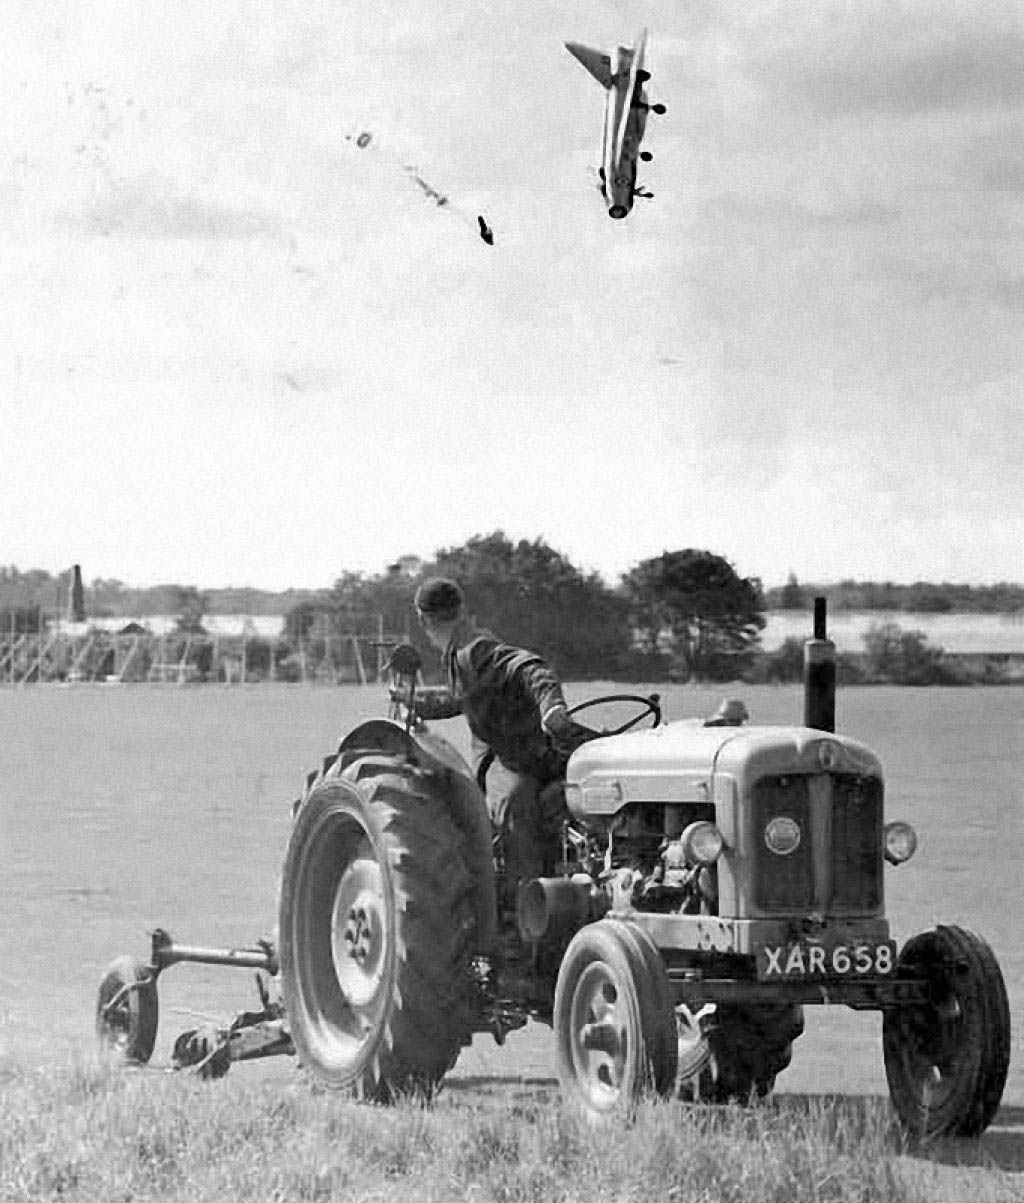 Test pilot George Aird narrowly escapes death by ejecting sideways from a prototype jet that nosedived (1962).